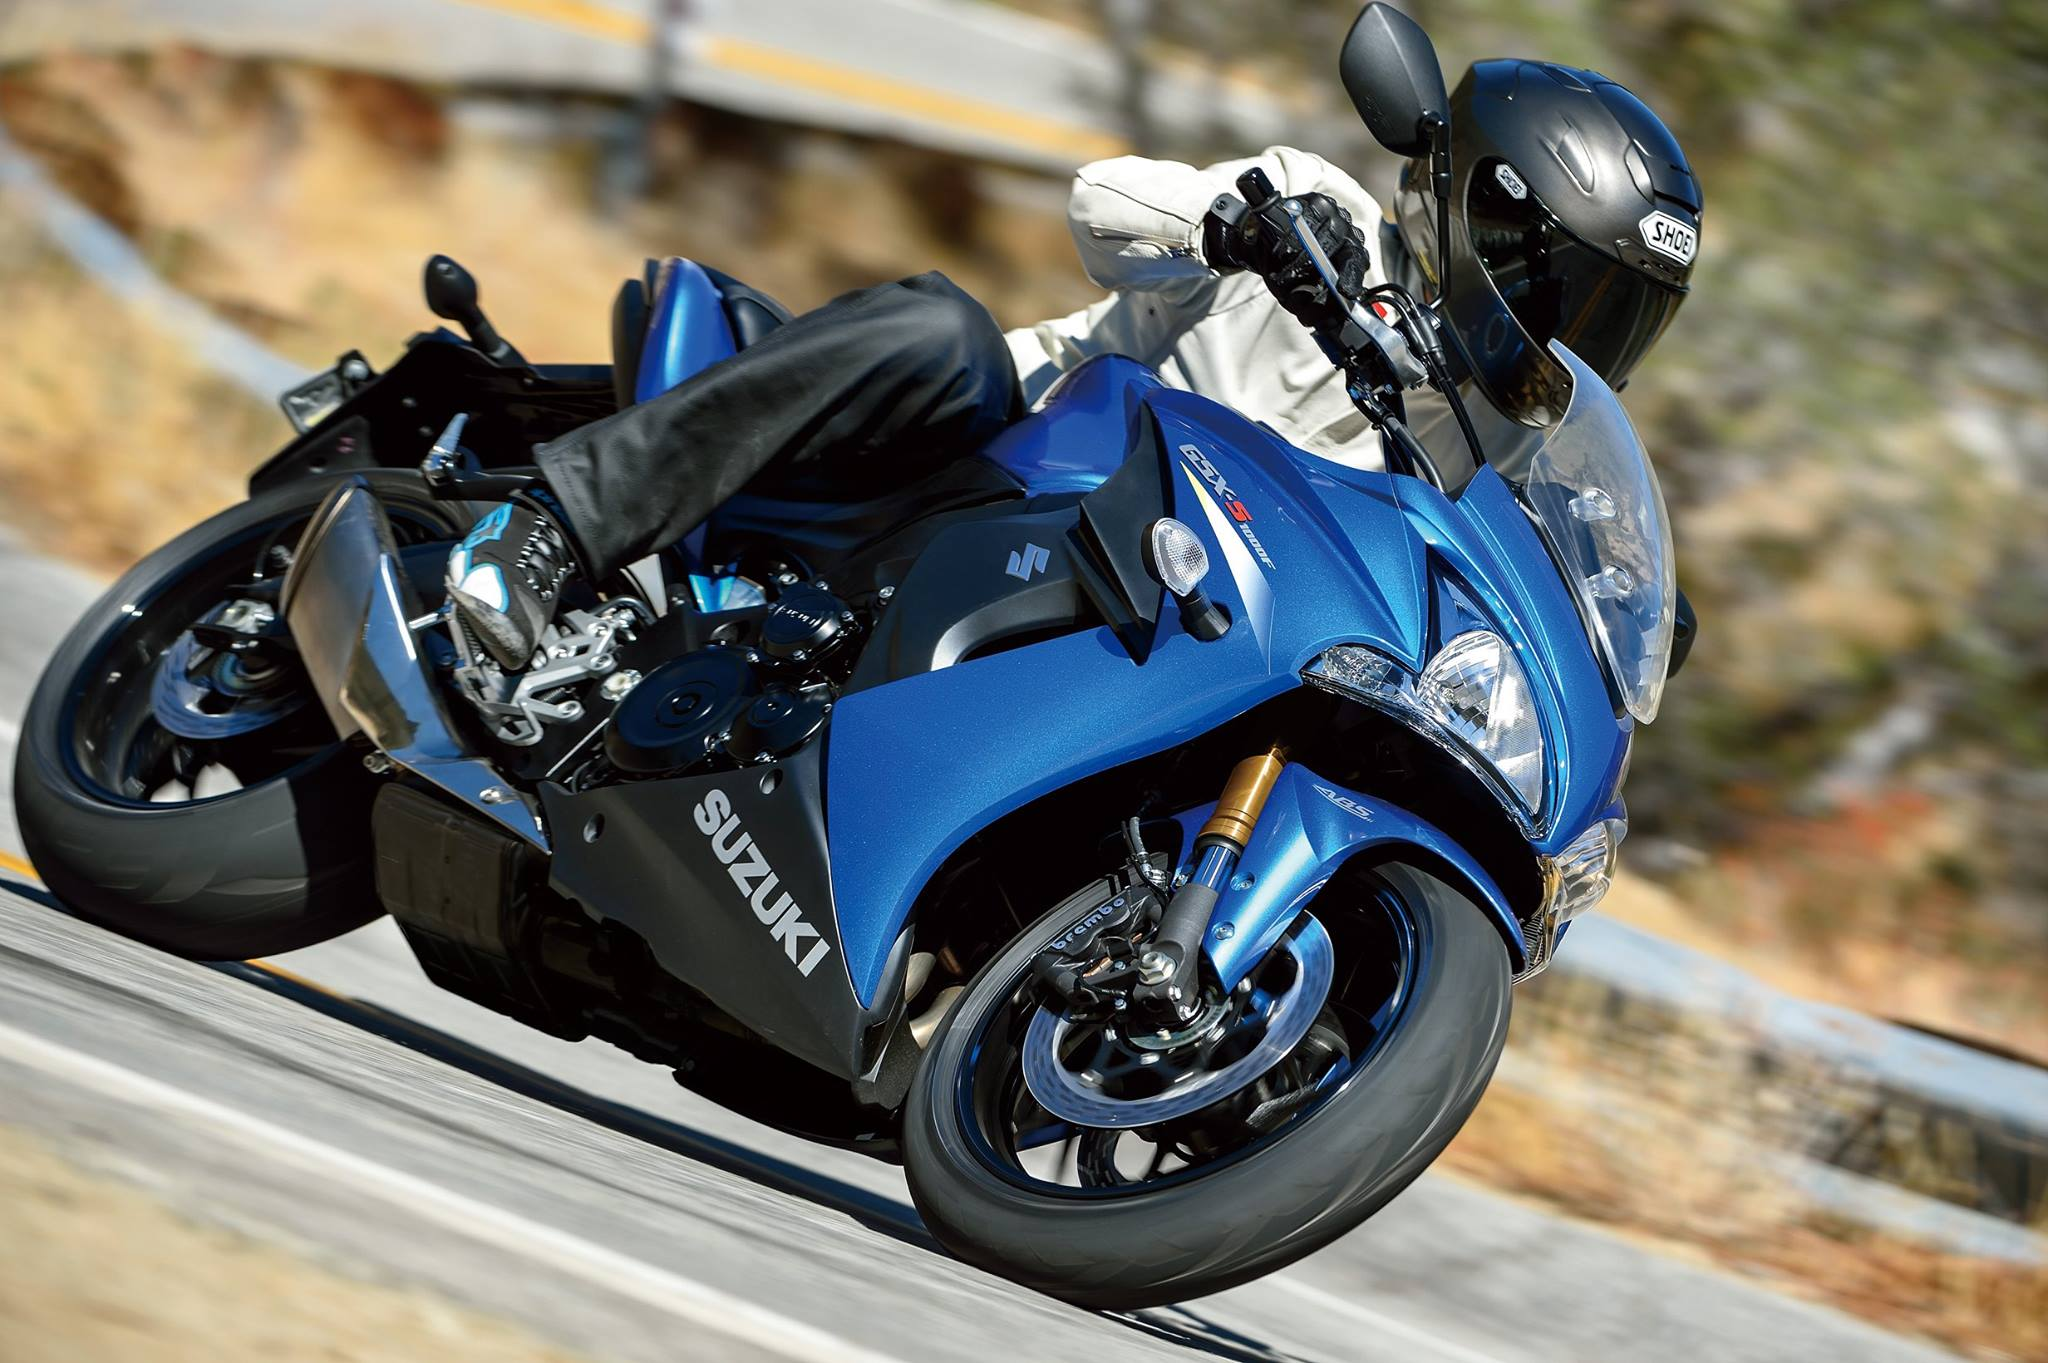 2015 Suzuki GSX-S1000 - How To Sell Leftover GSX-Rs